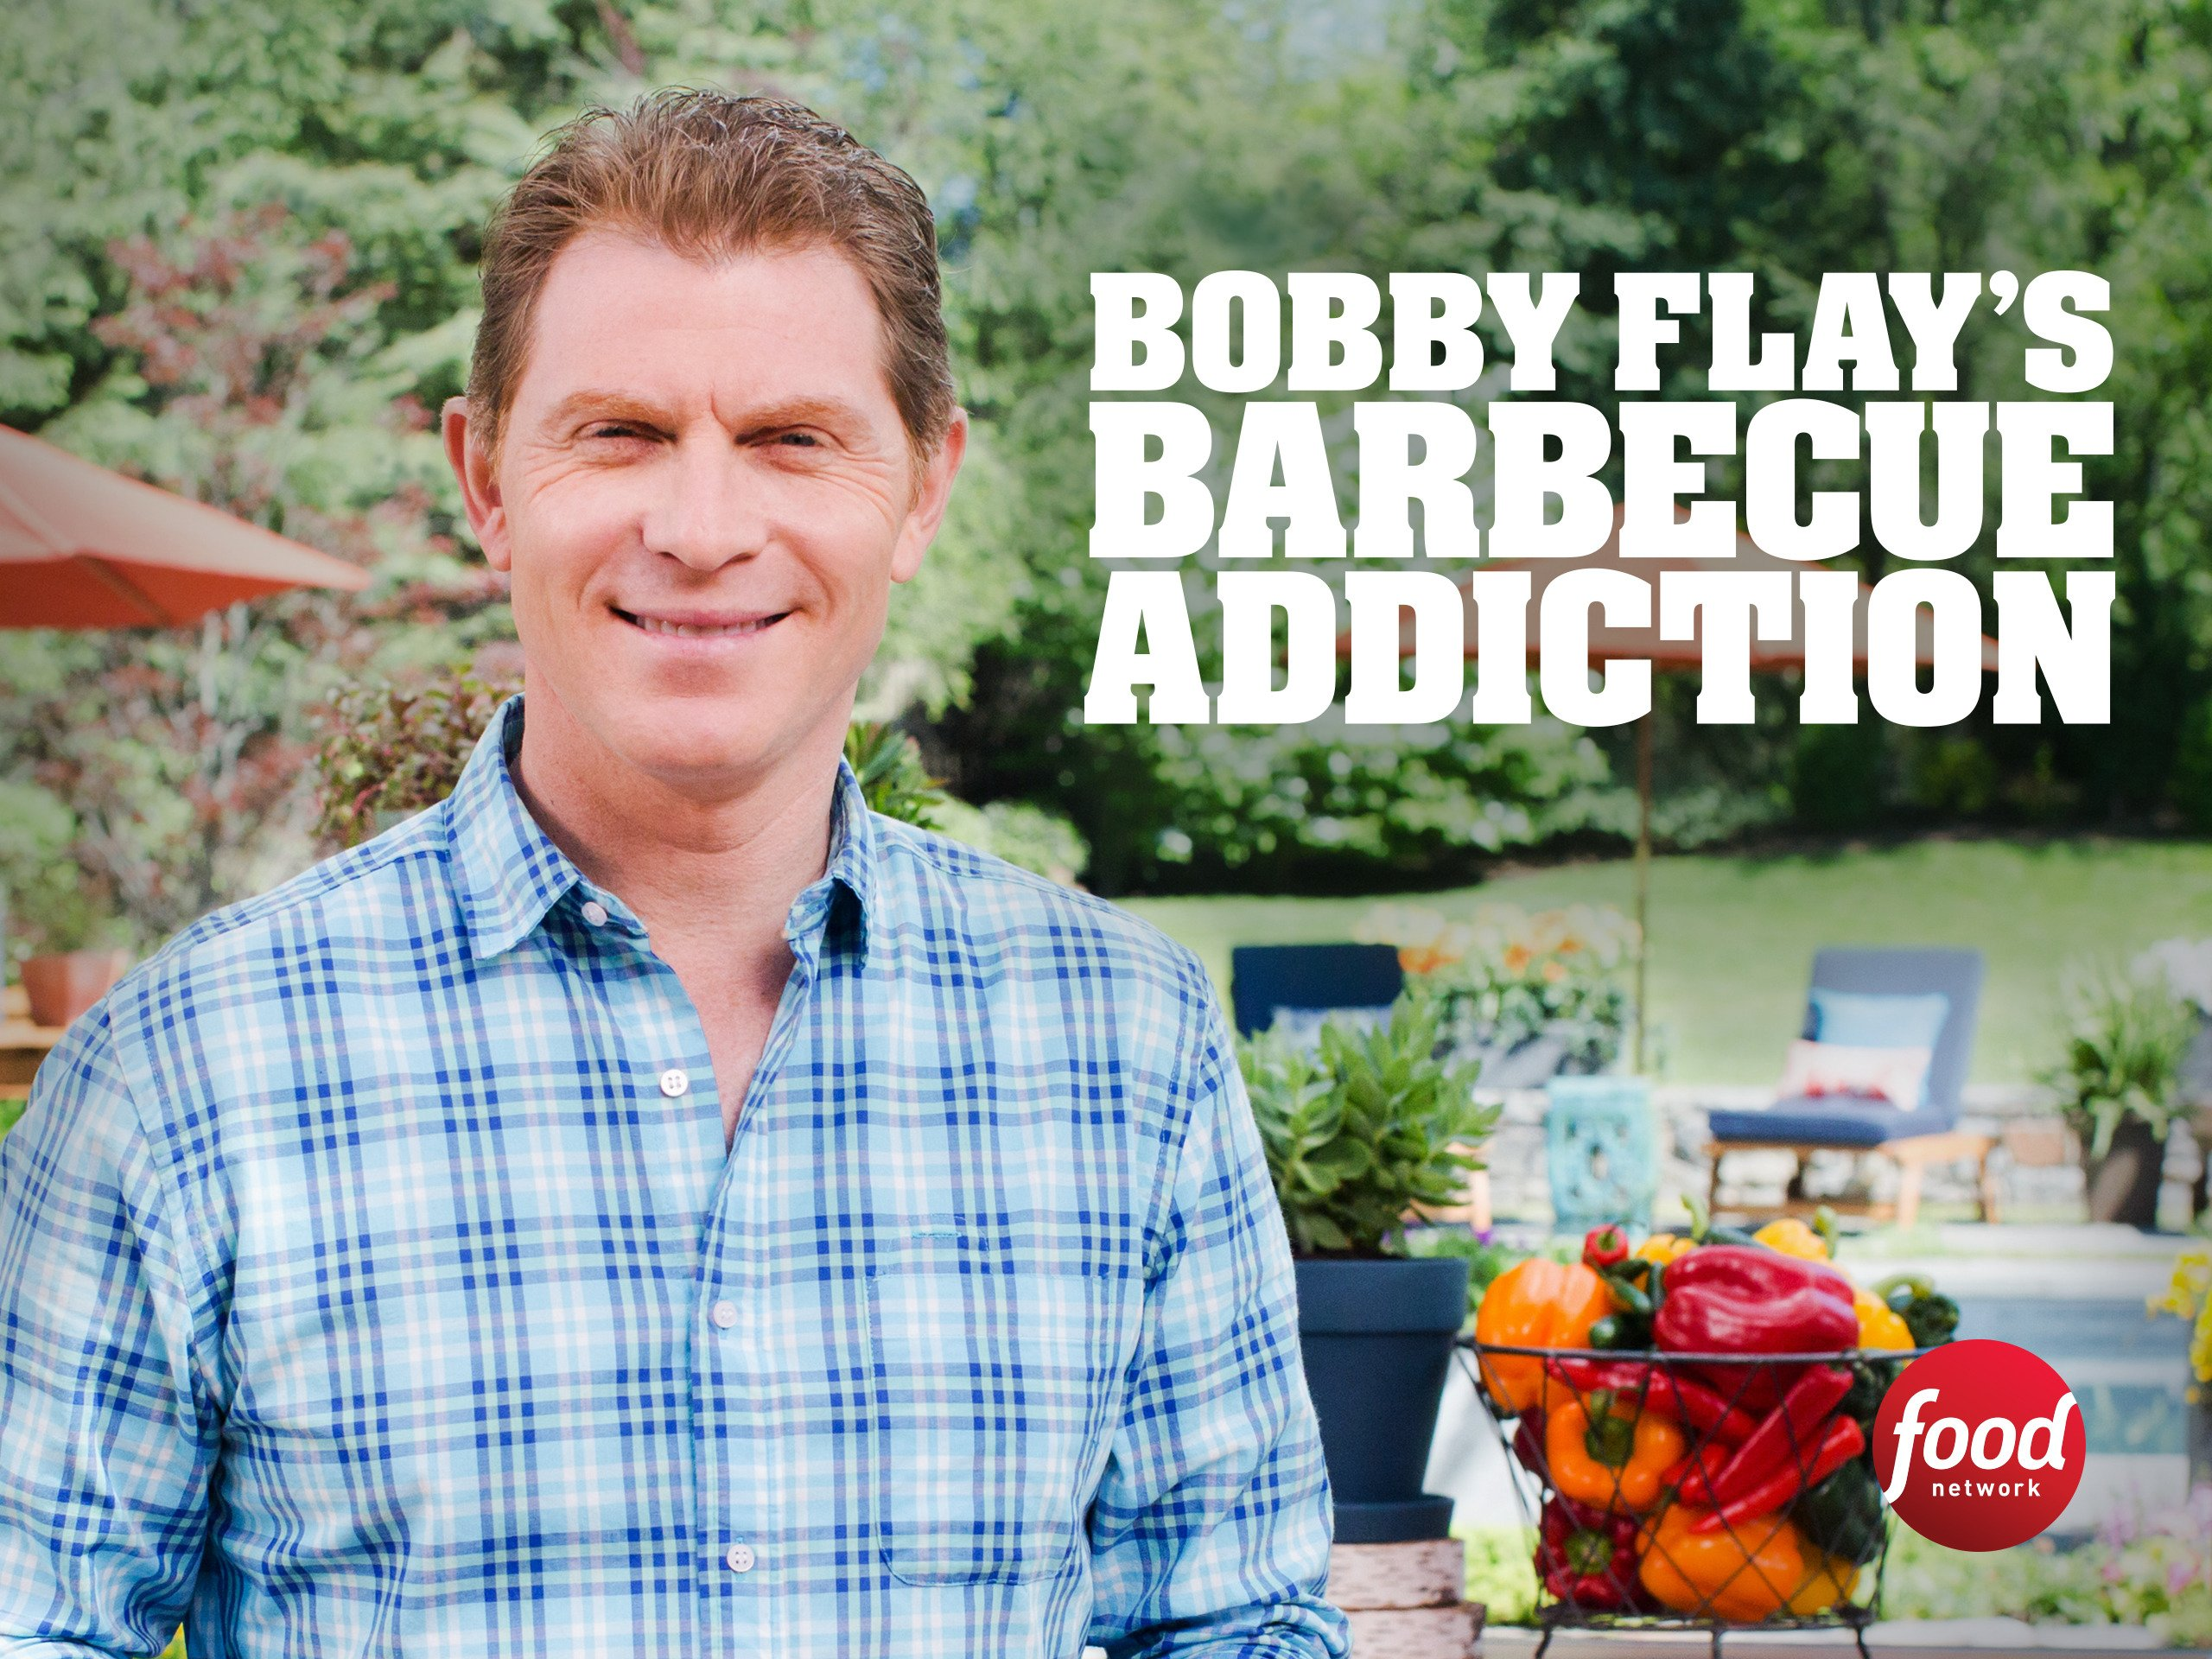 bobby flays barbecue addiction bobbys basics bold flavor barbecue